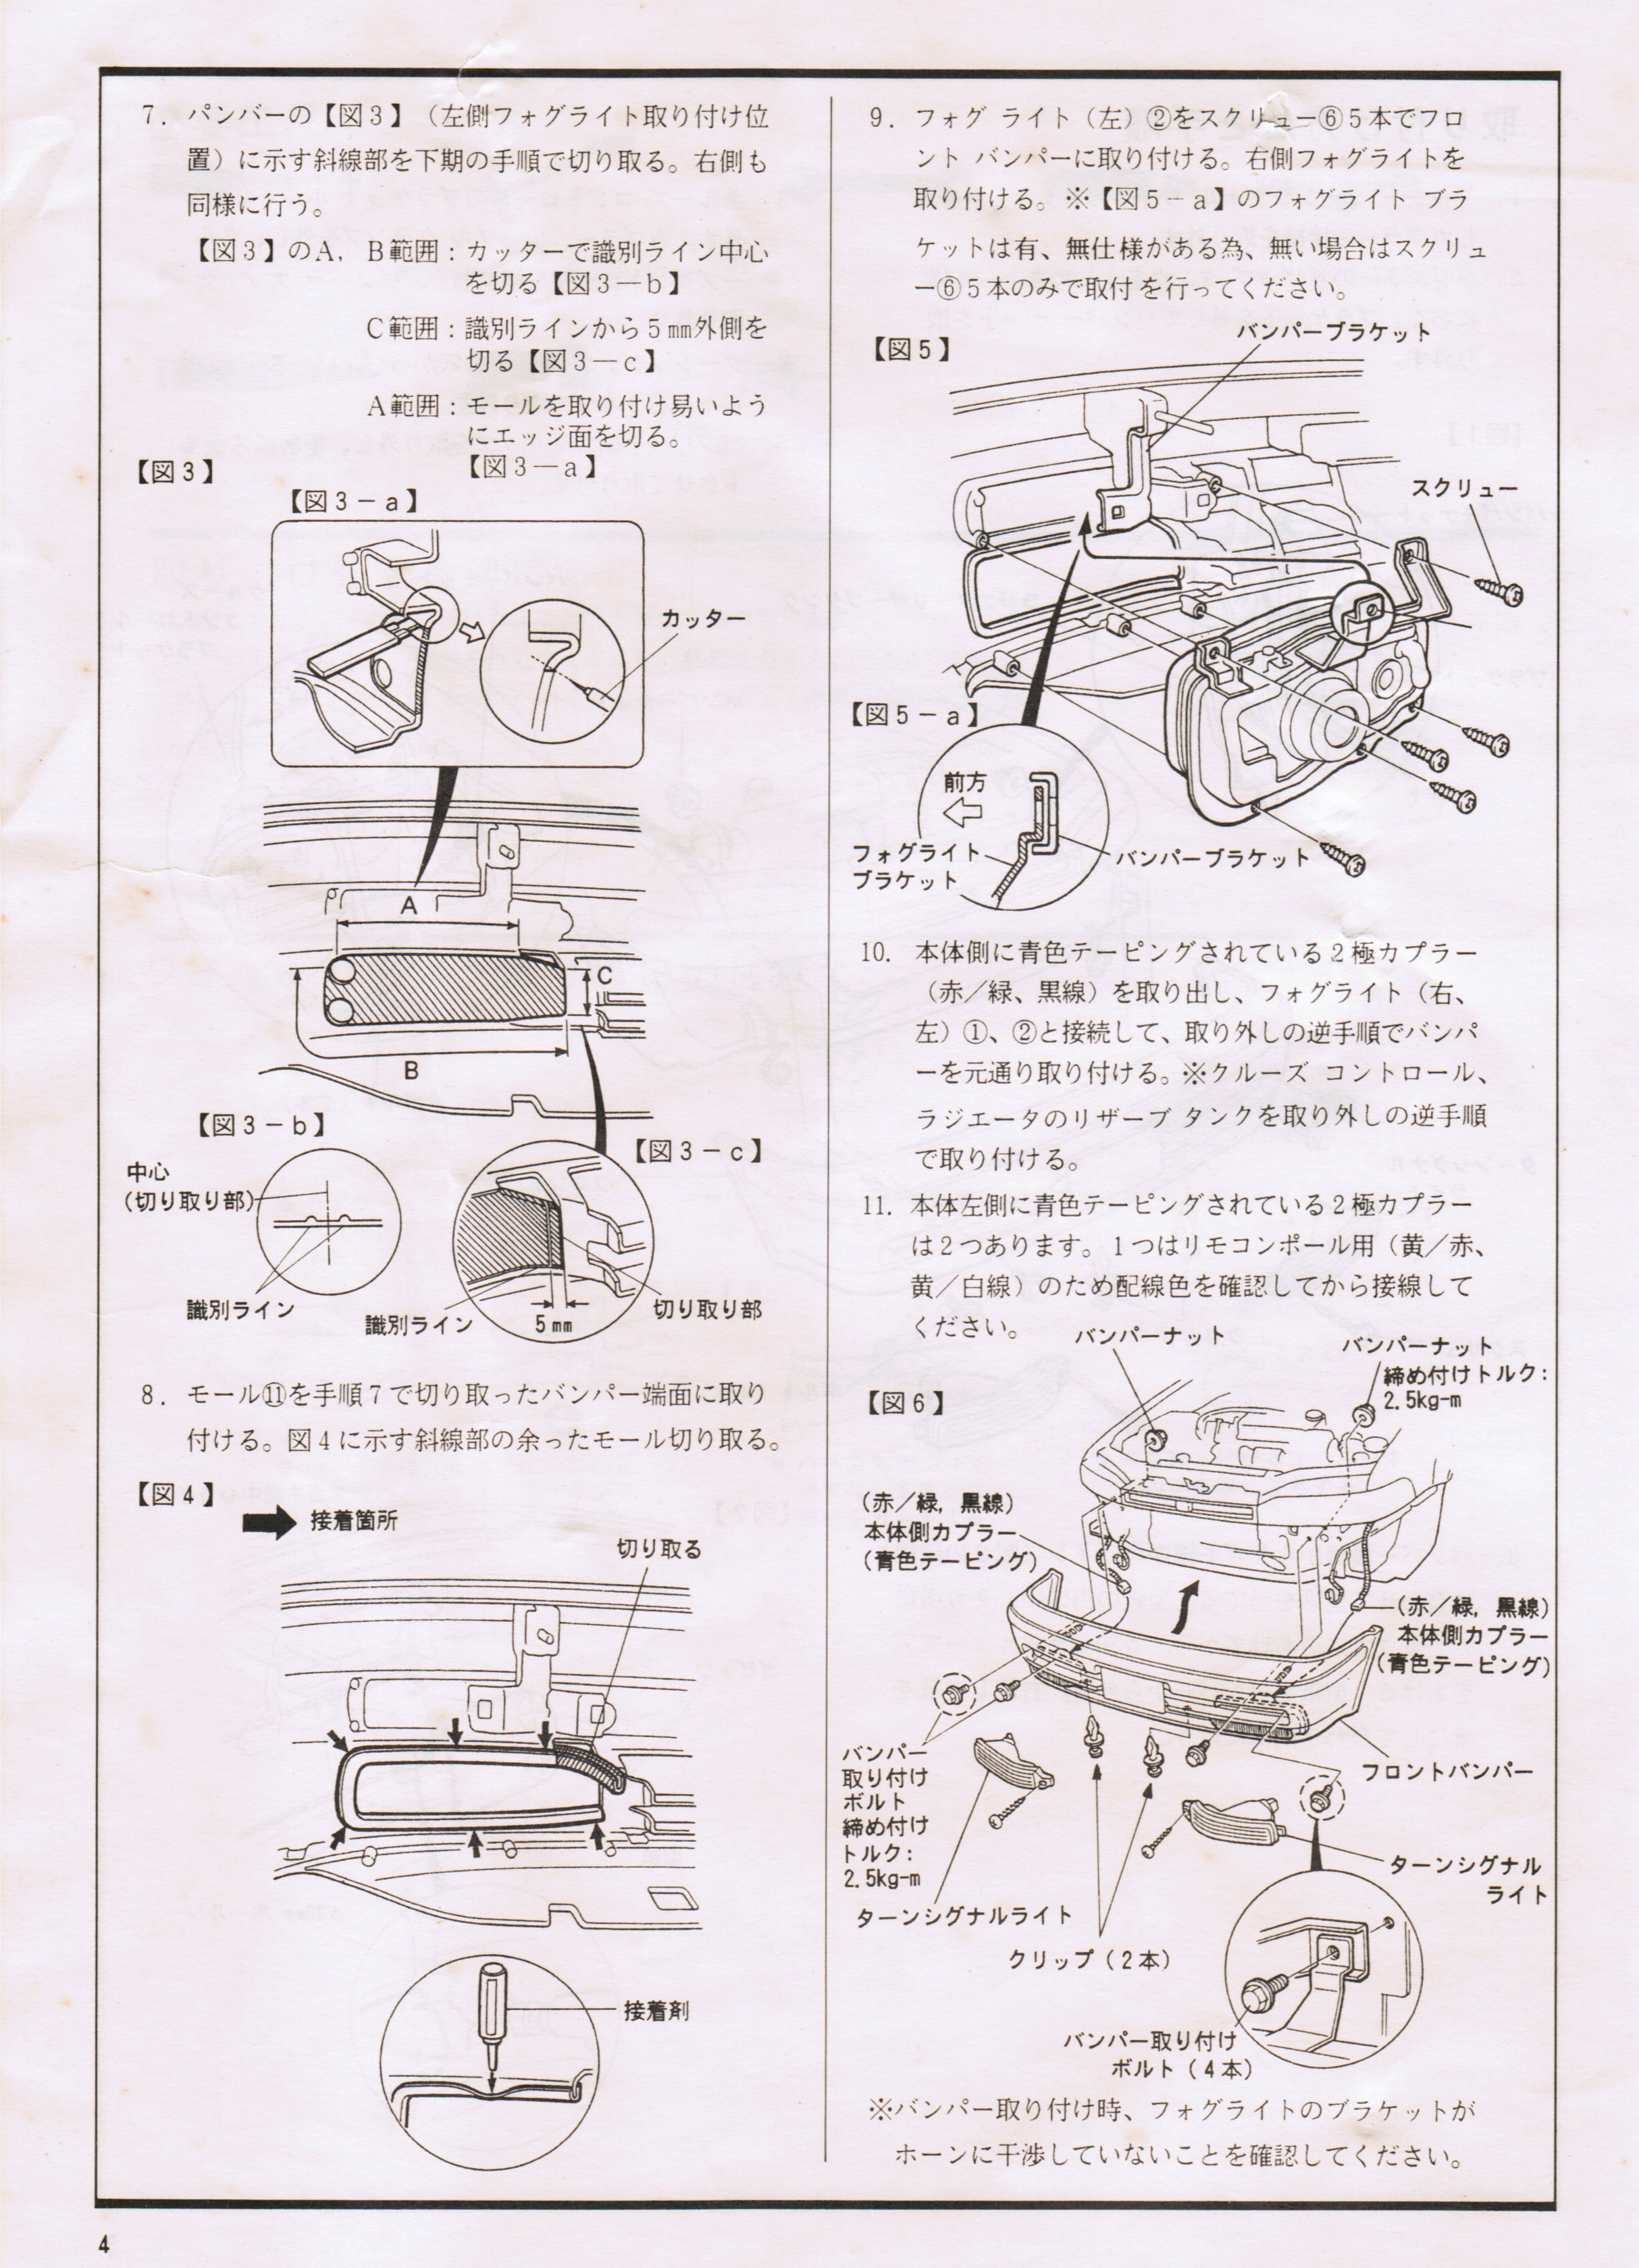 99 00 civic radio wiring diagram hyundai excel fog light library